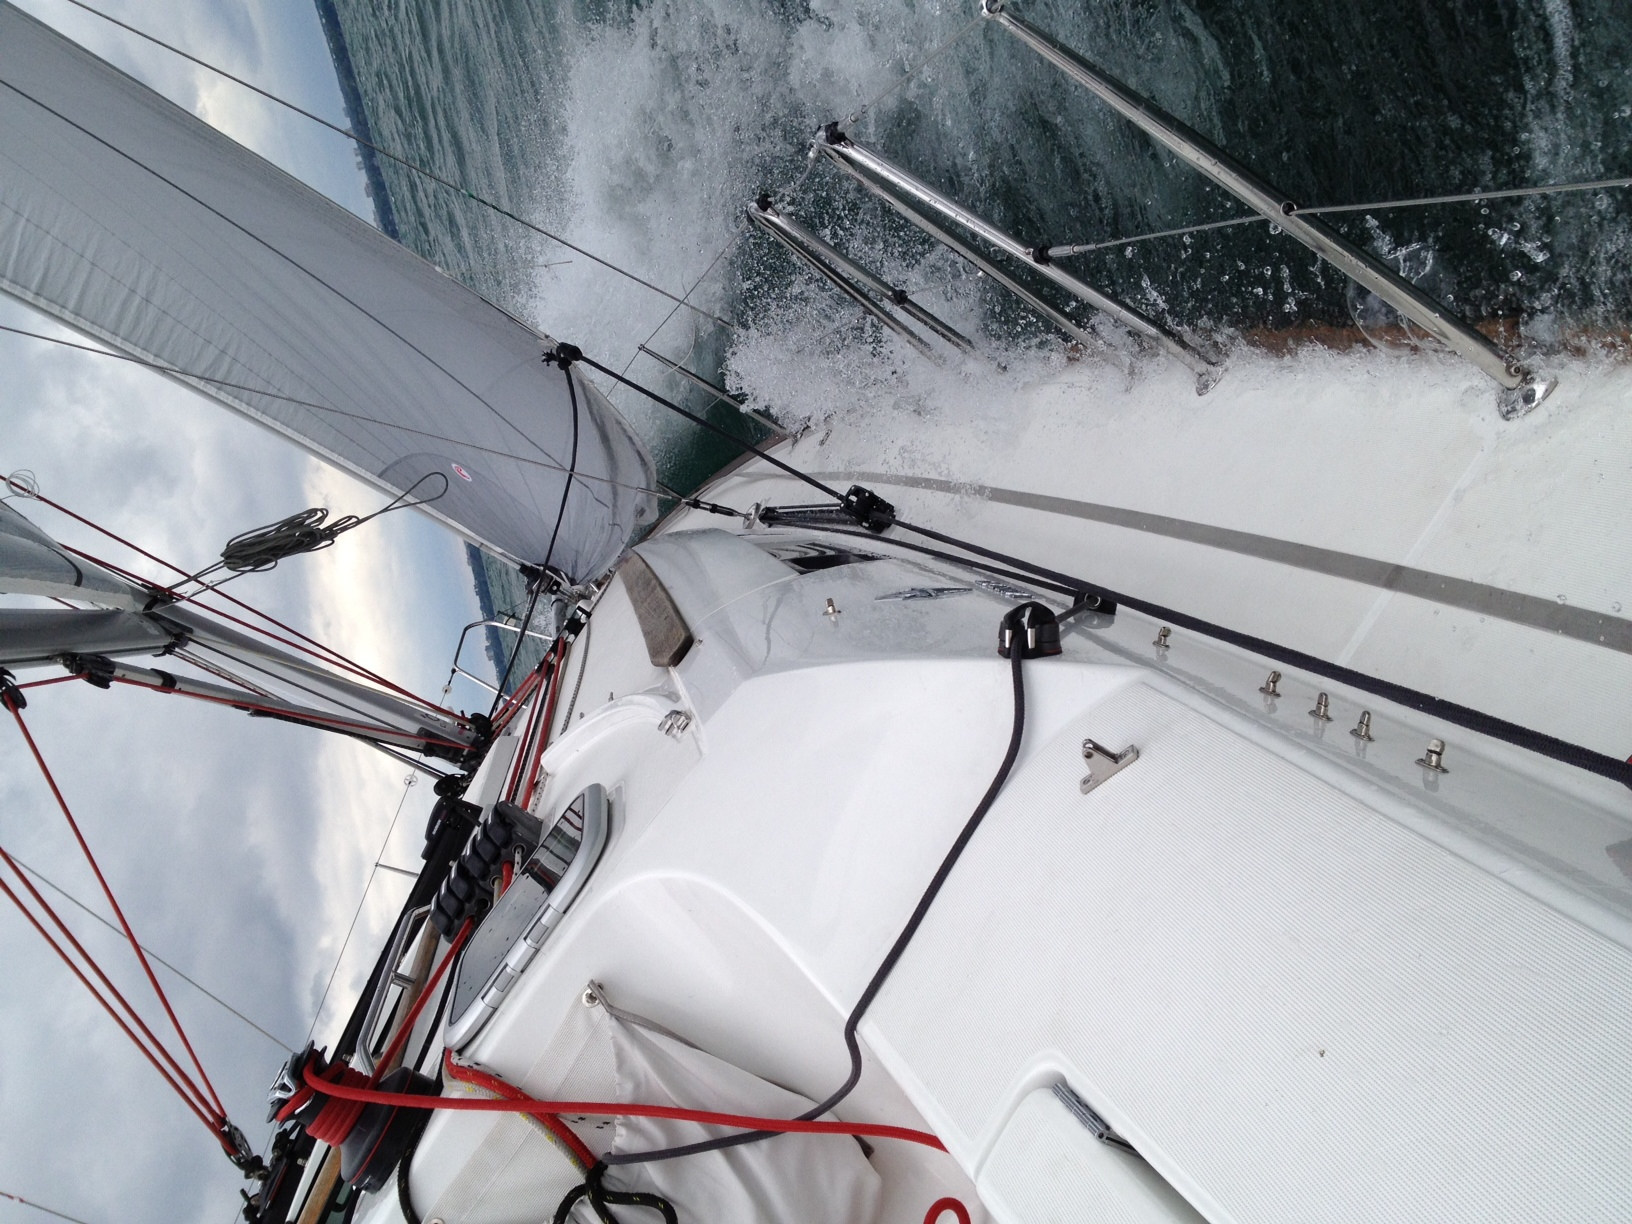 Blk Diamond! Beating Up Wind 7 to 7.5 knots of boat speed, in 20-25 knots of wind.